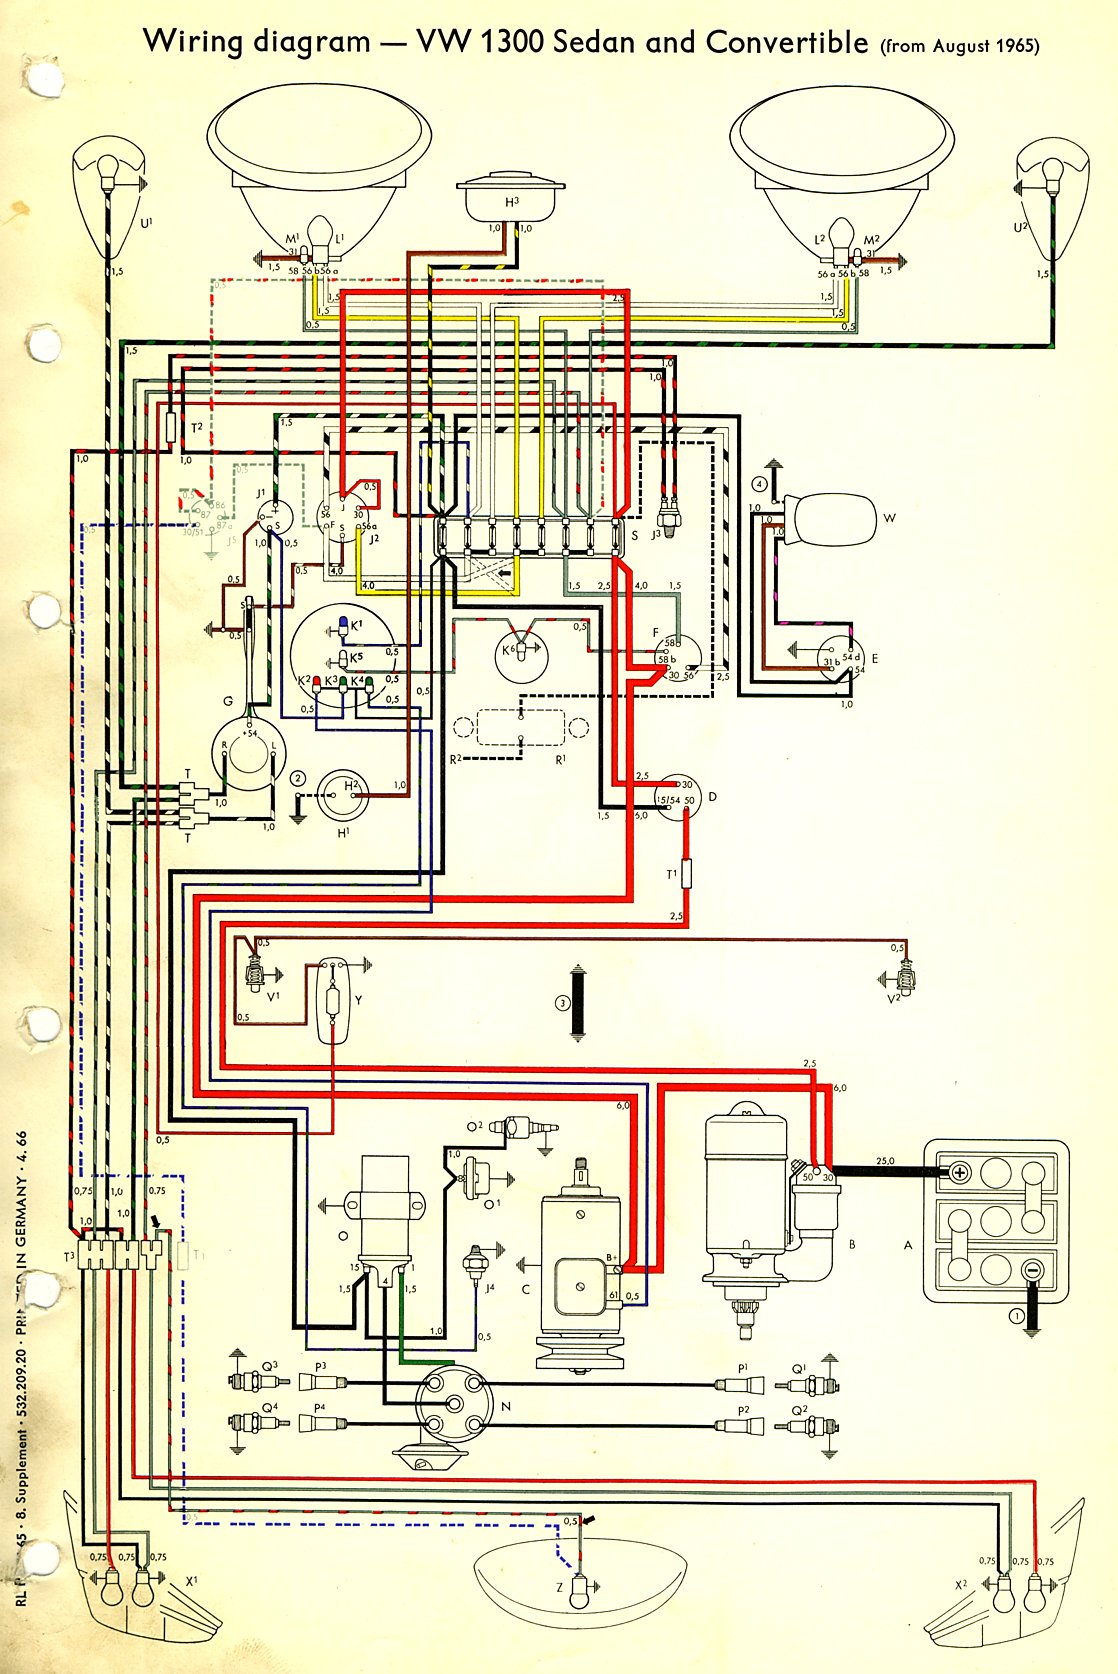 1965 vw bug wire harness with Wiringt1 on 63 Volkswagen Wiring Diagram likewise Viewtopic further Wiring also 4bteg I M Working Dune Buggy Wire Coil Gen in addition Diagrams hissind.